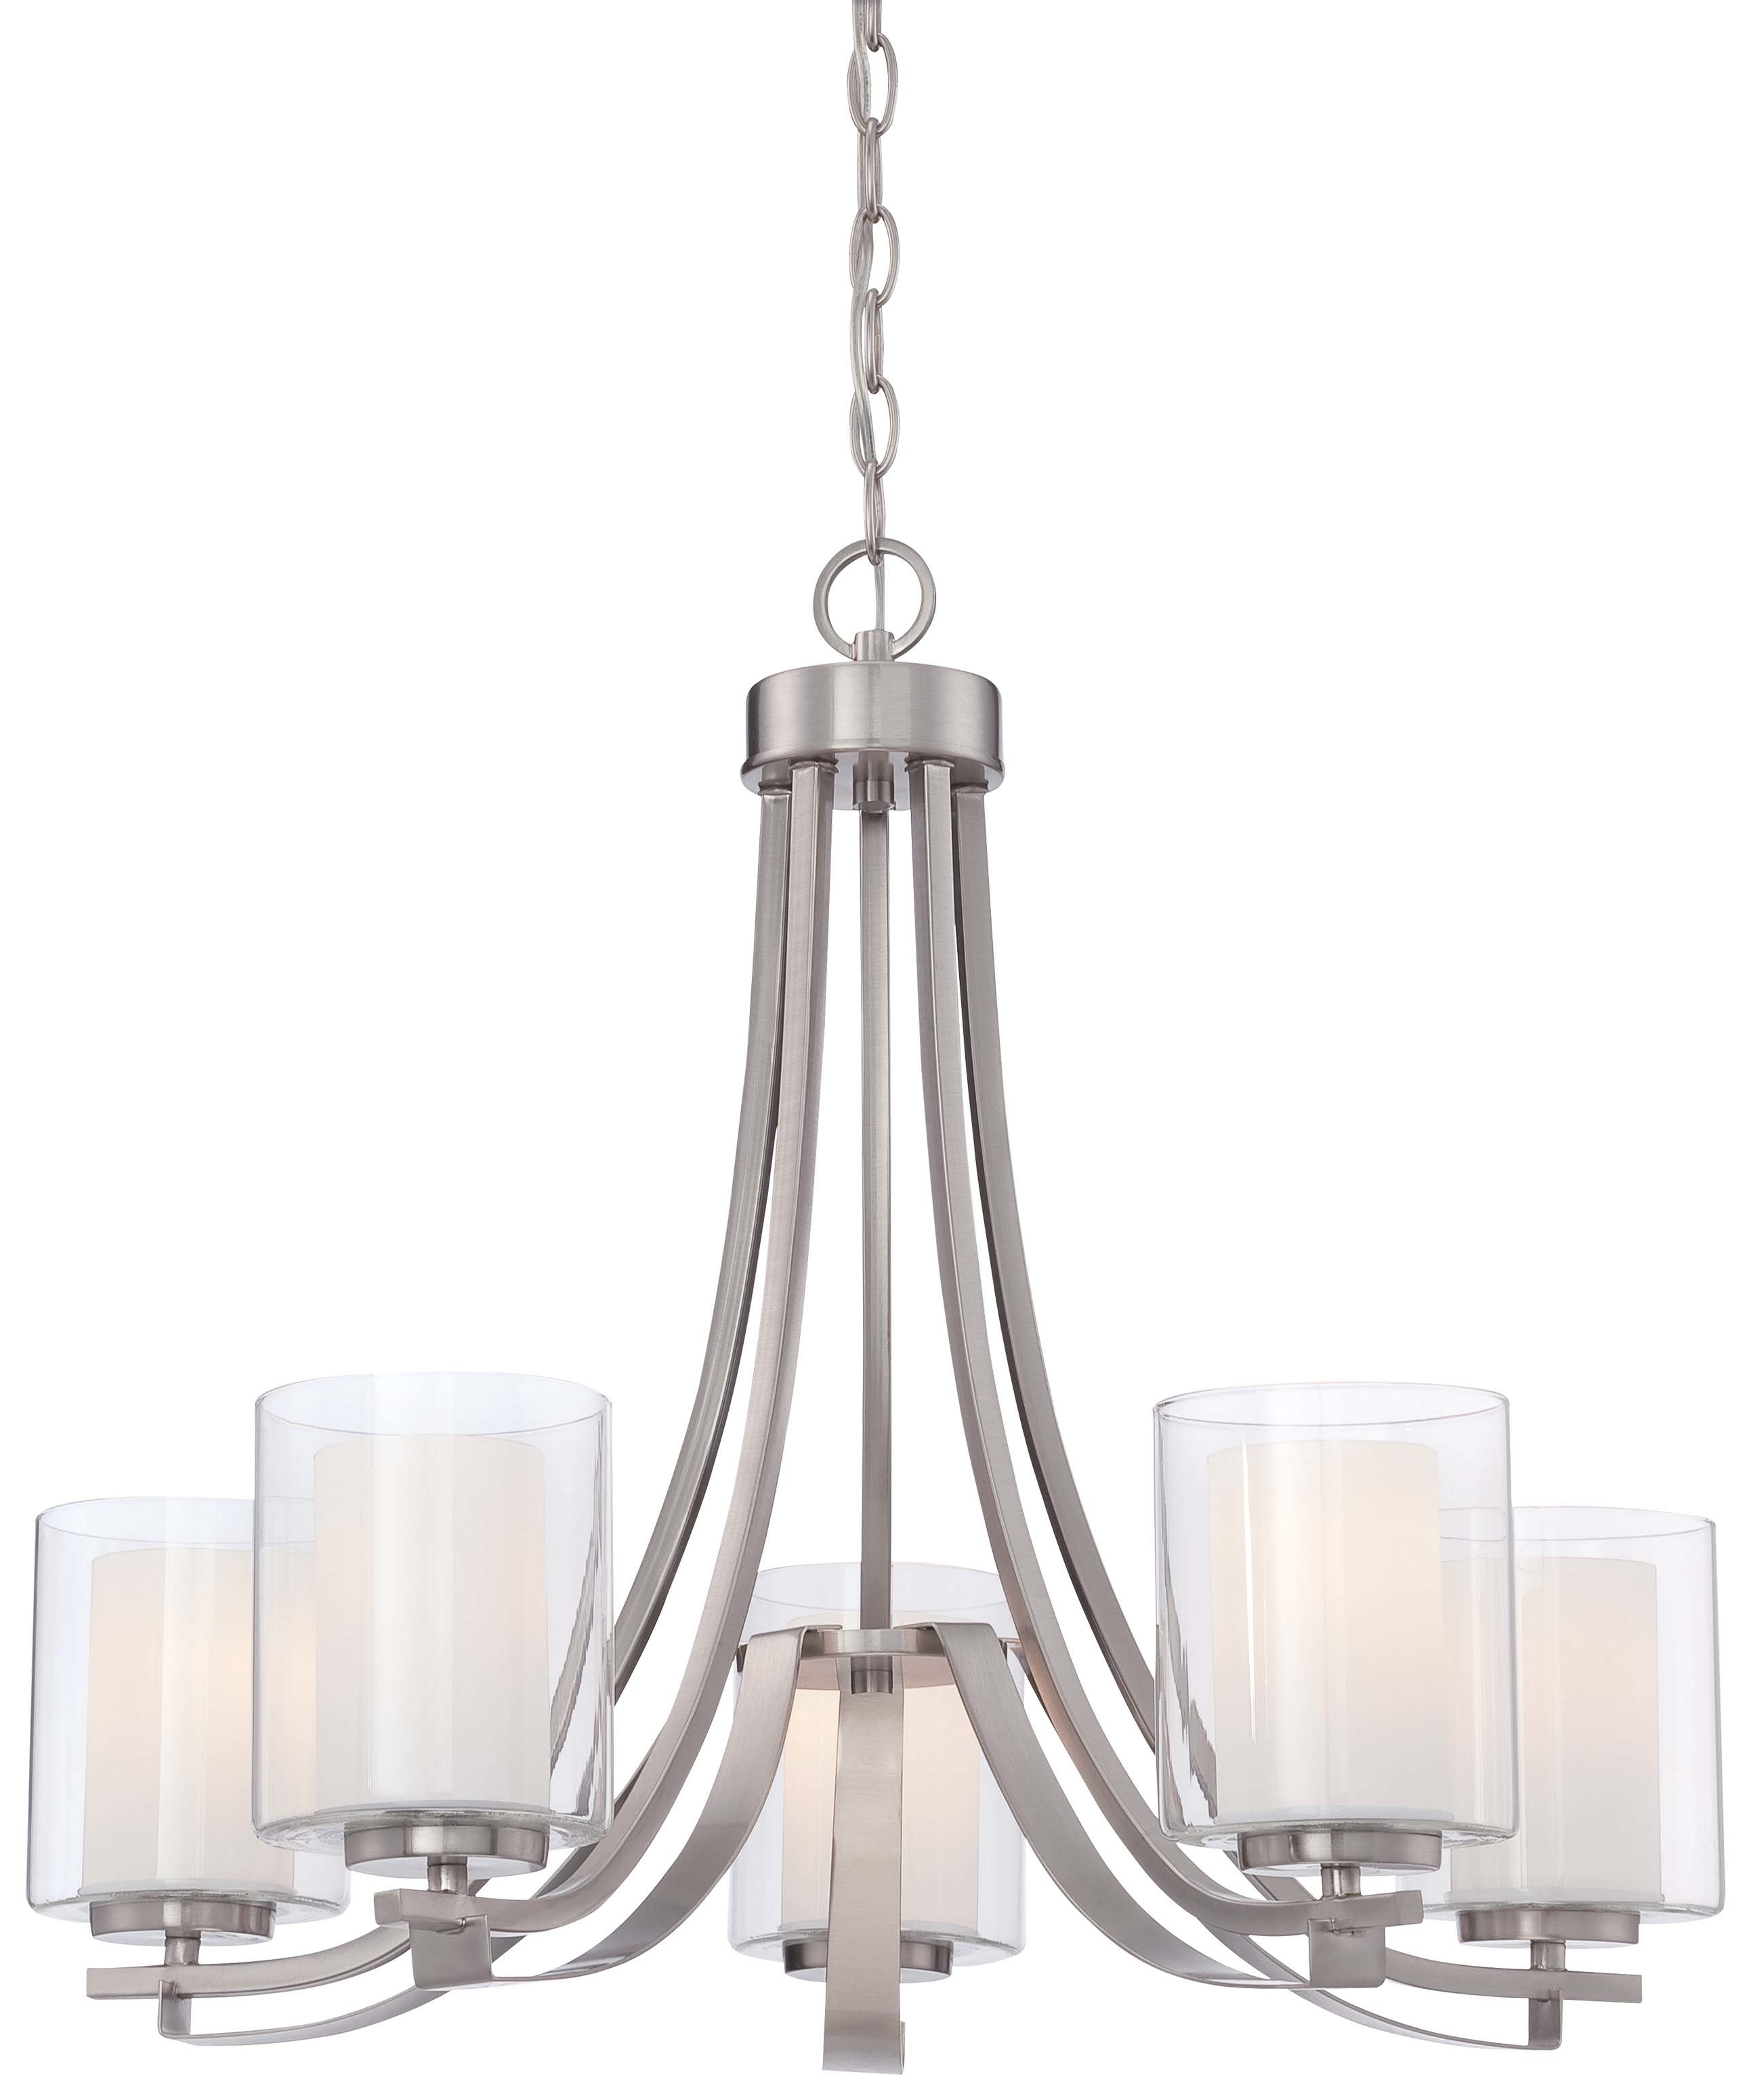 2019 Crofoot 5 Light Shaded Chandeliers Intended For Demby 5 Light Shaded Chandelier (Gallery 2 of 20)